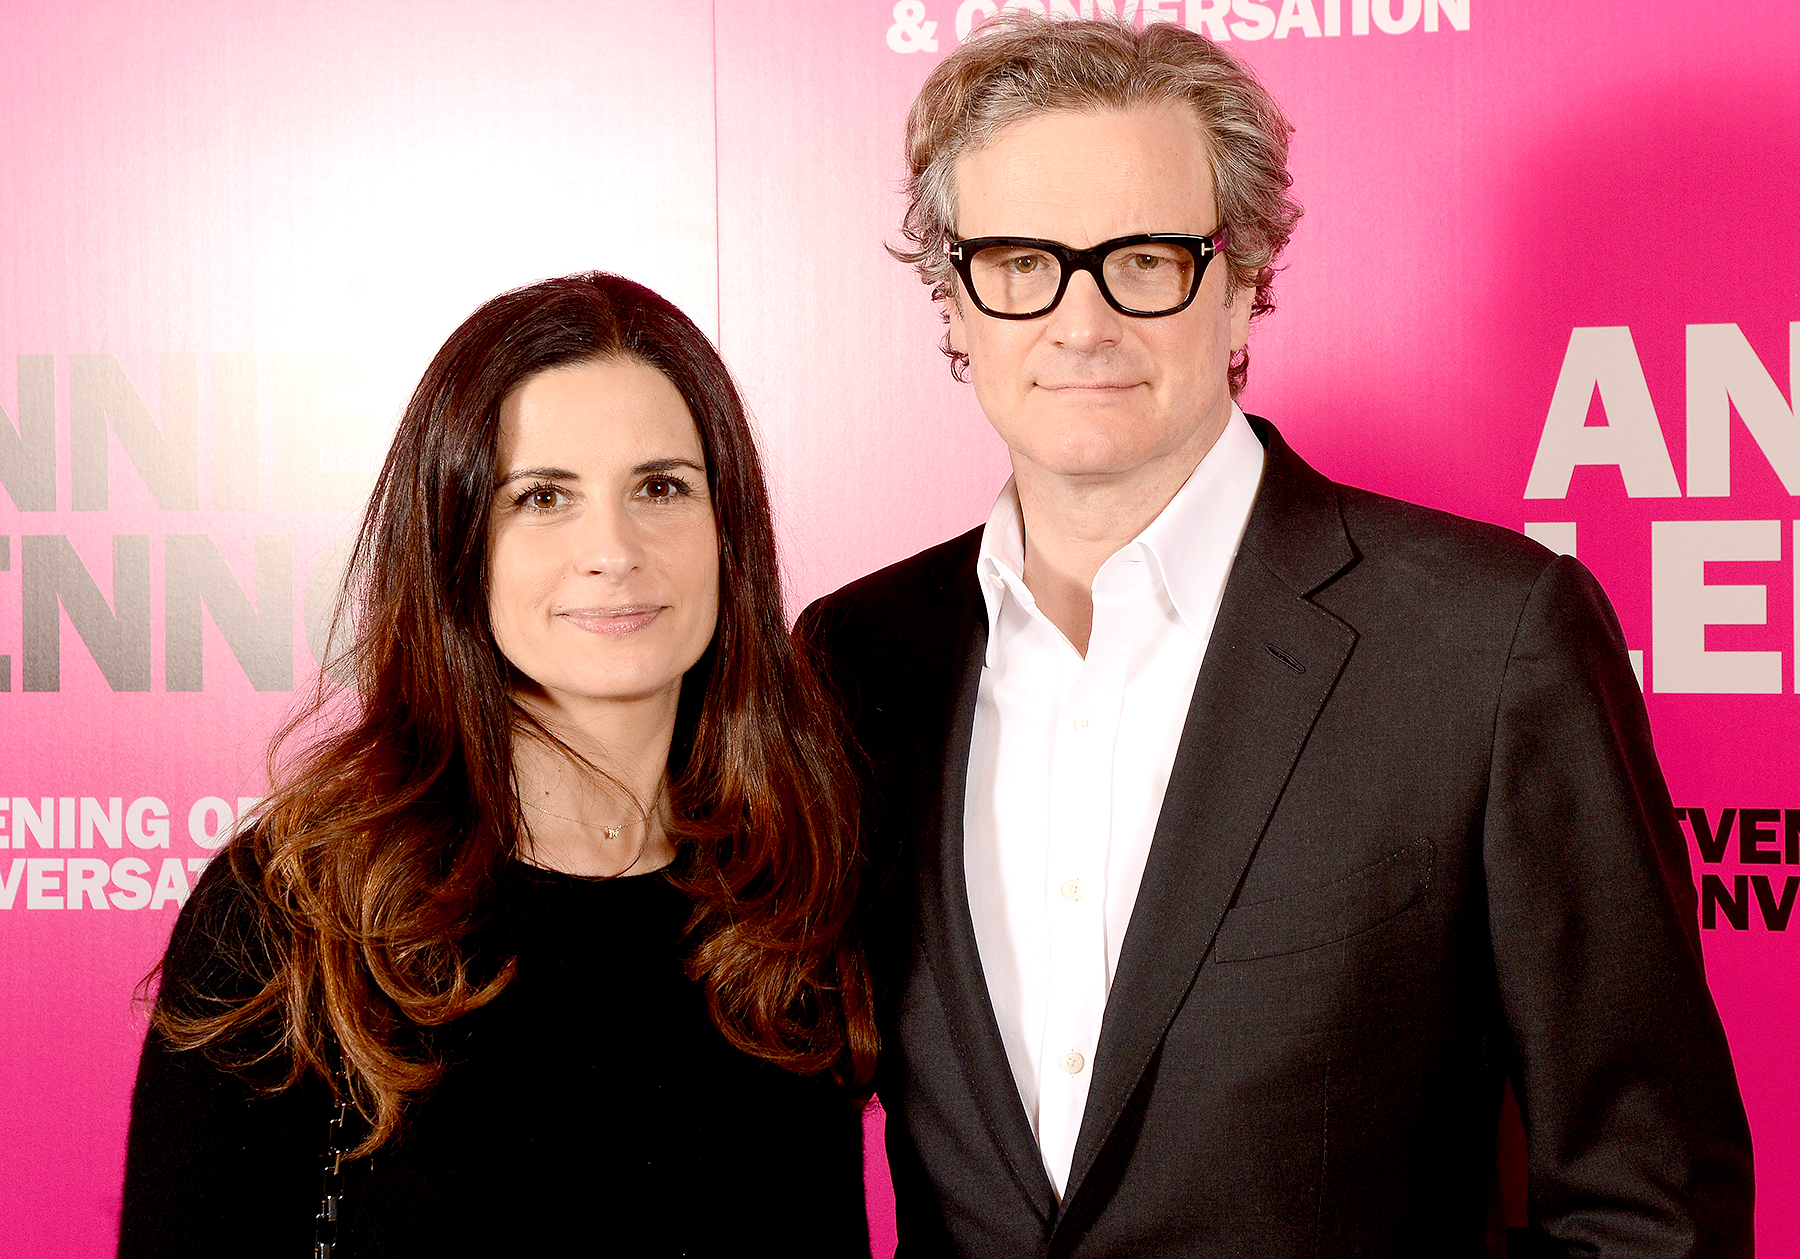 Livia-Firth-and-Colin-Firth